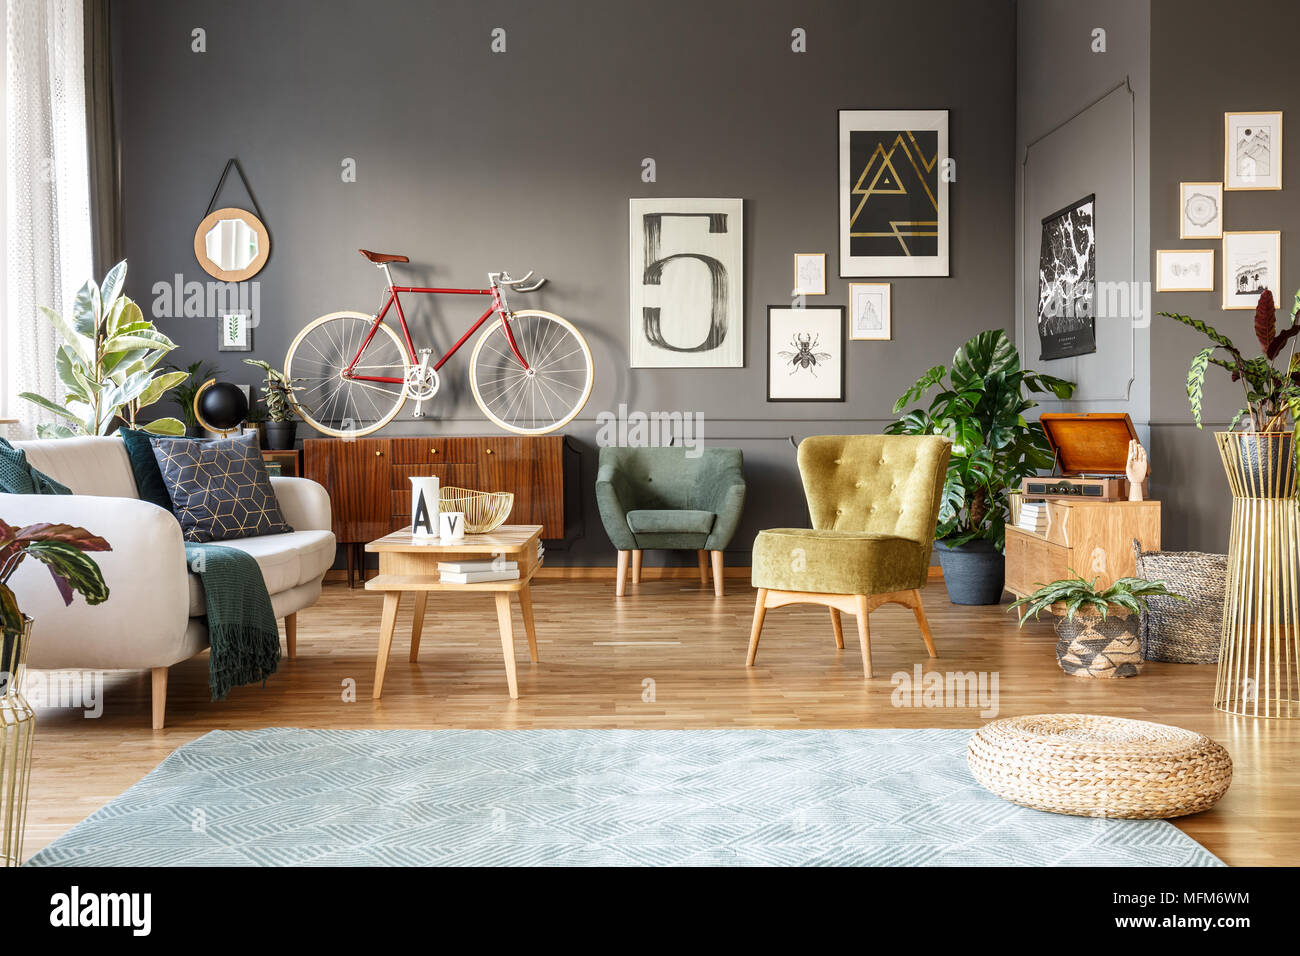 Pouf On Grey Carpet In Spacious Living Room Interior With Green Armchairs,  Posters And Red Bike